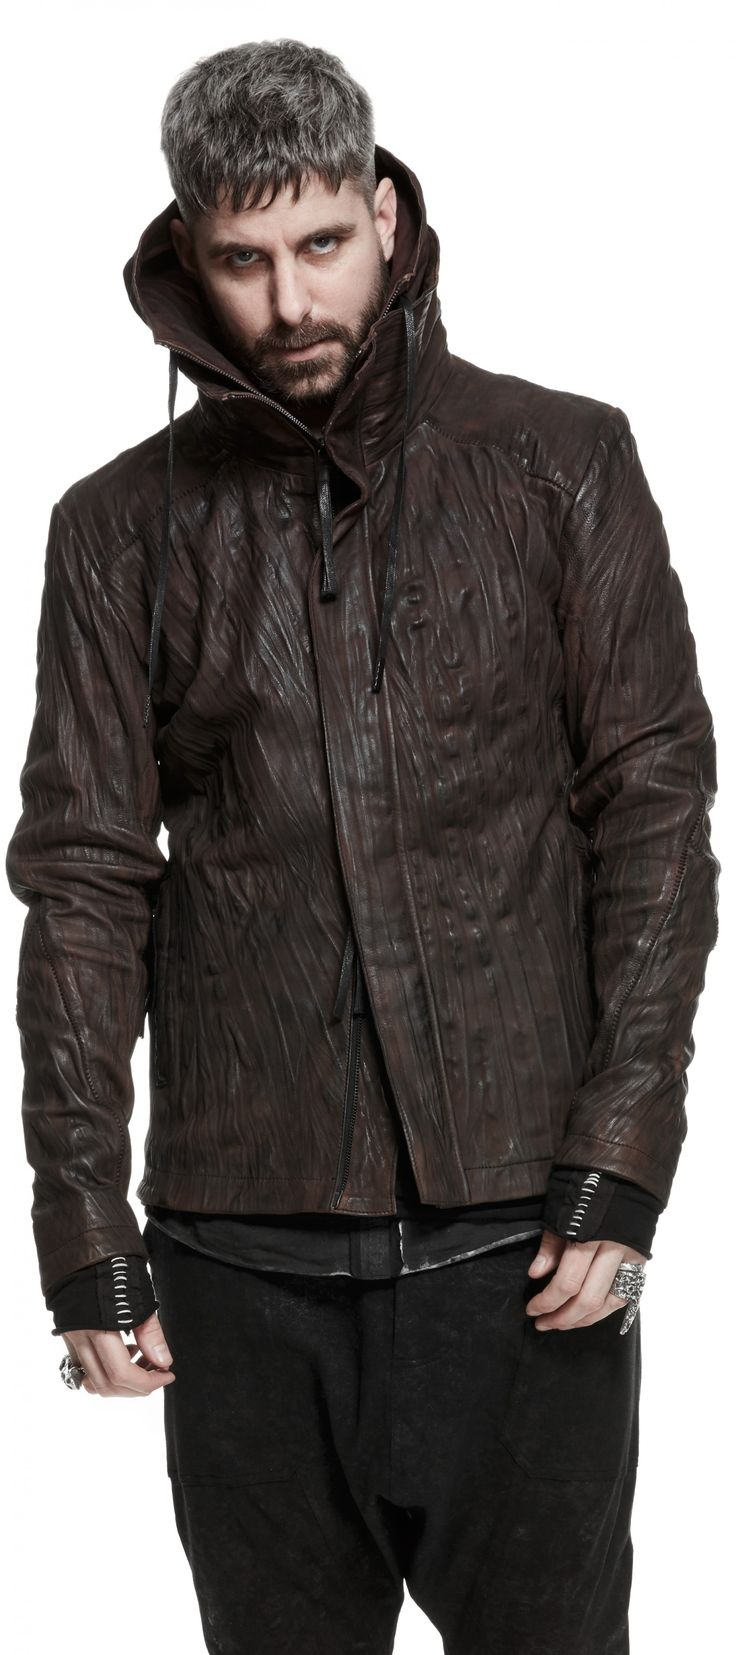 Object Hooded washed leather jacket unconventional